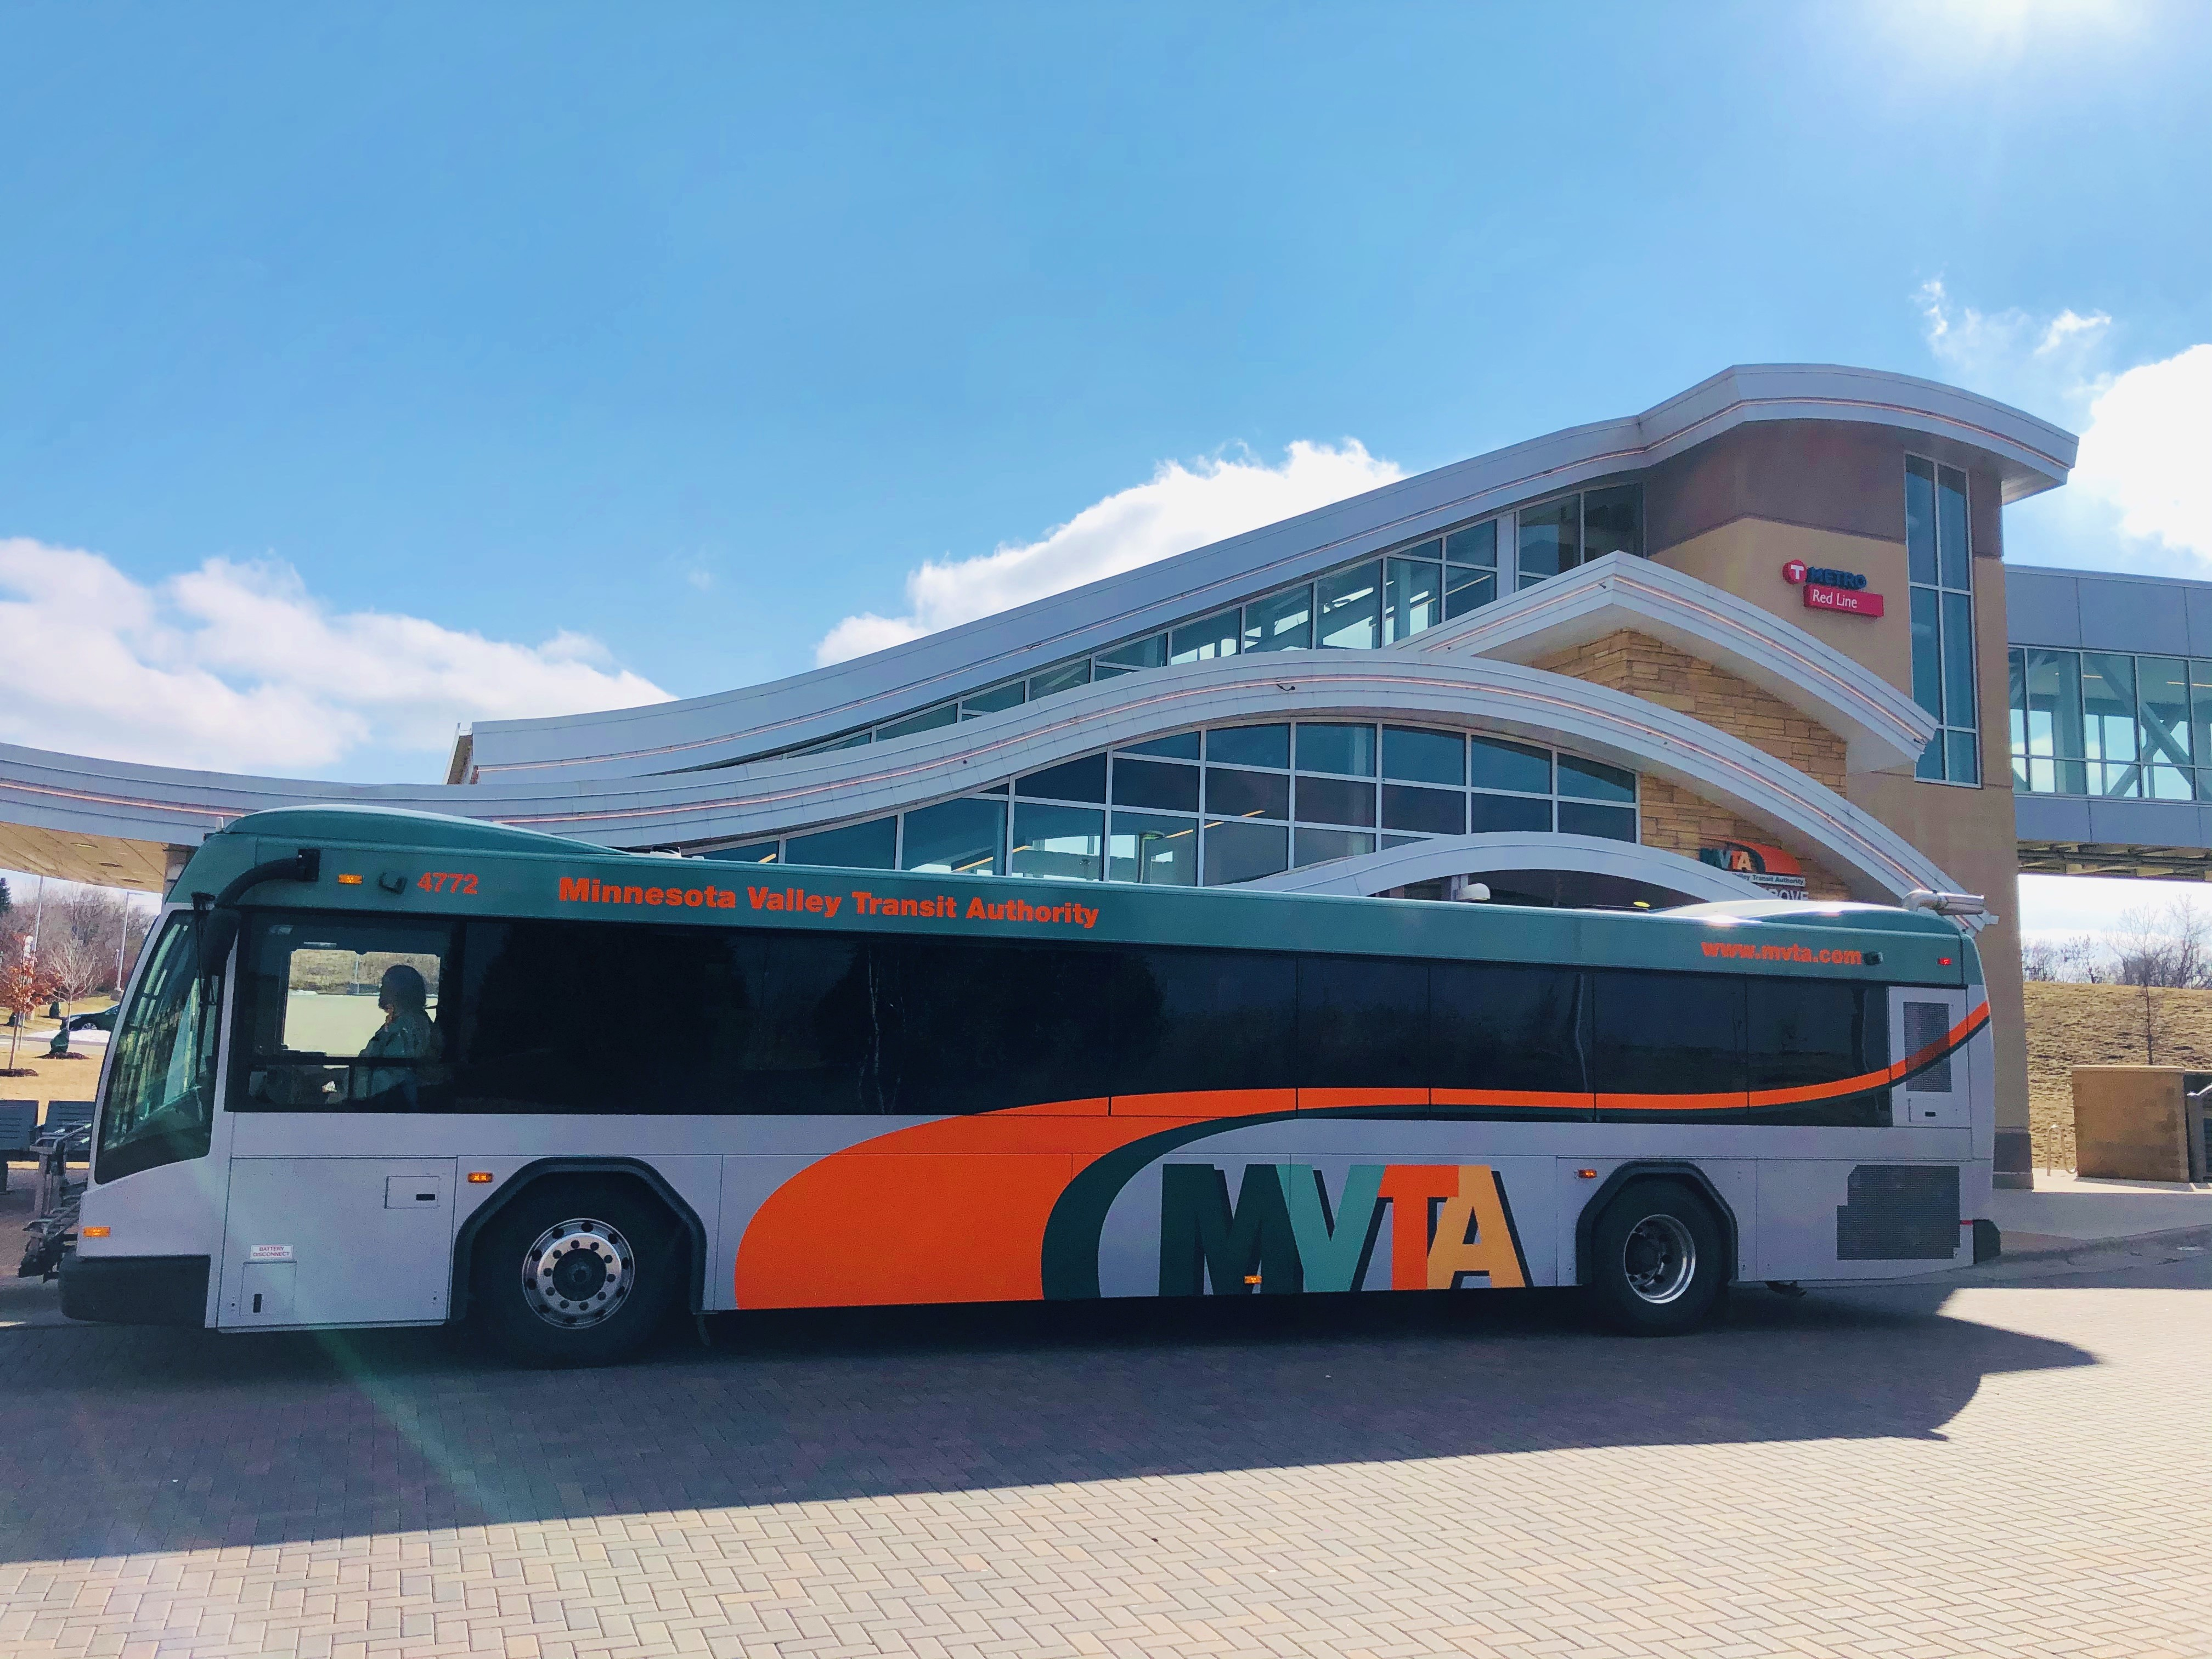 Cedar Grove Transit Station is located on Nicols Road near Cedar Grove Parkway, within walking distance of Twin City Premium Outlets. Red Line buses pick up/drop off passengers at the 'online' station on Cedar Avenue. All other MVTA buses utilize the station located on Nicols.